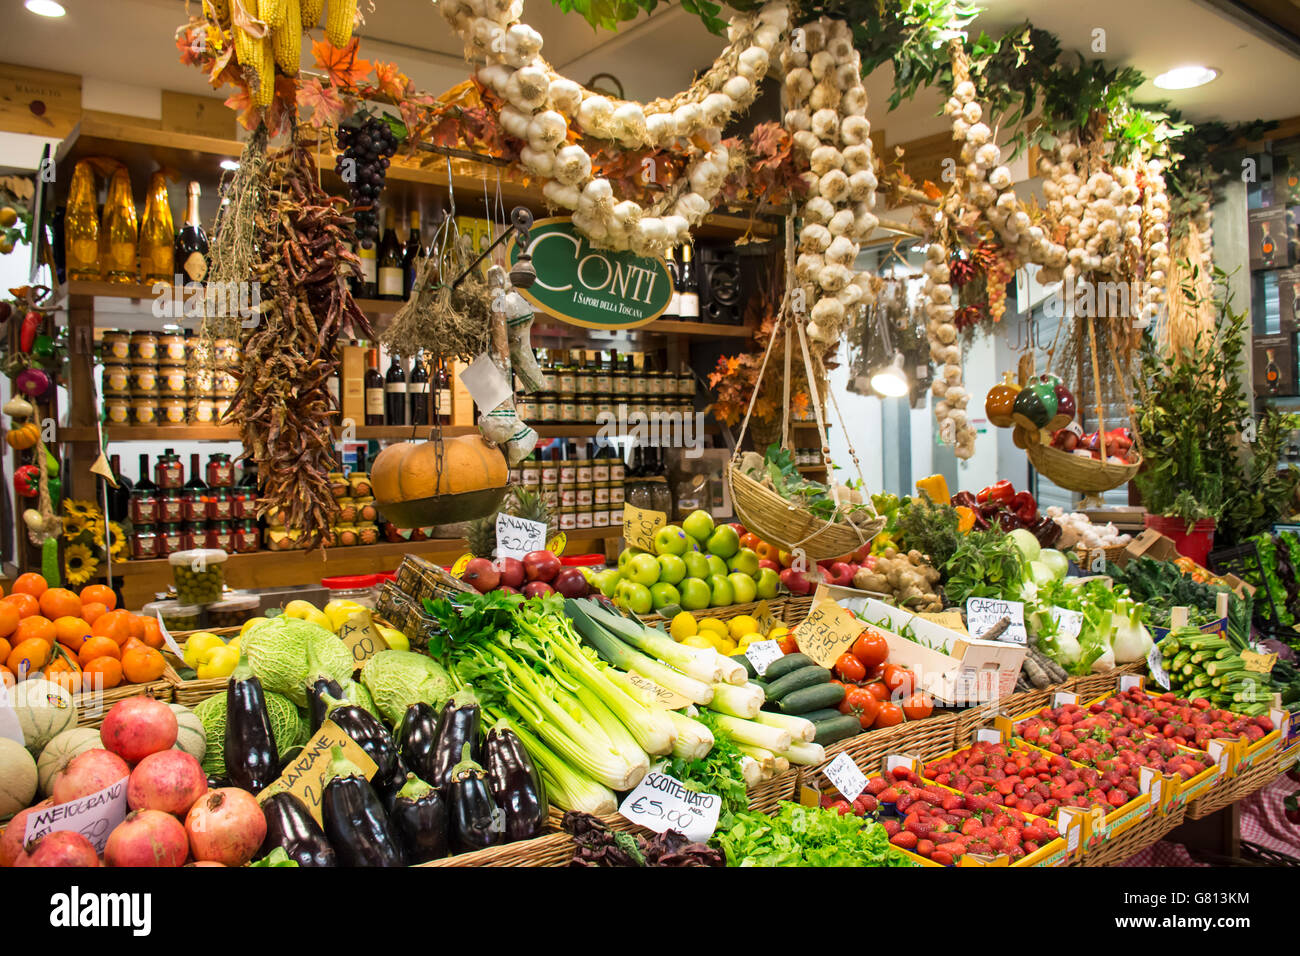 Mercato Centrale (Central market), Florence, Italy - Stock Image